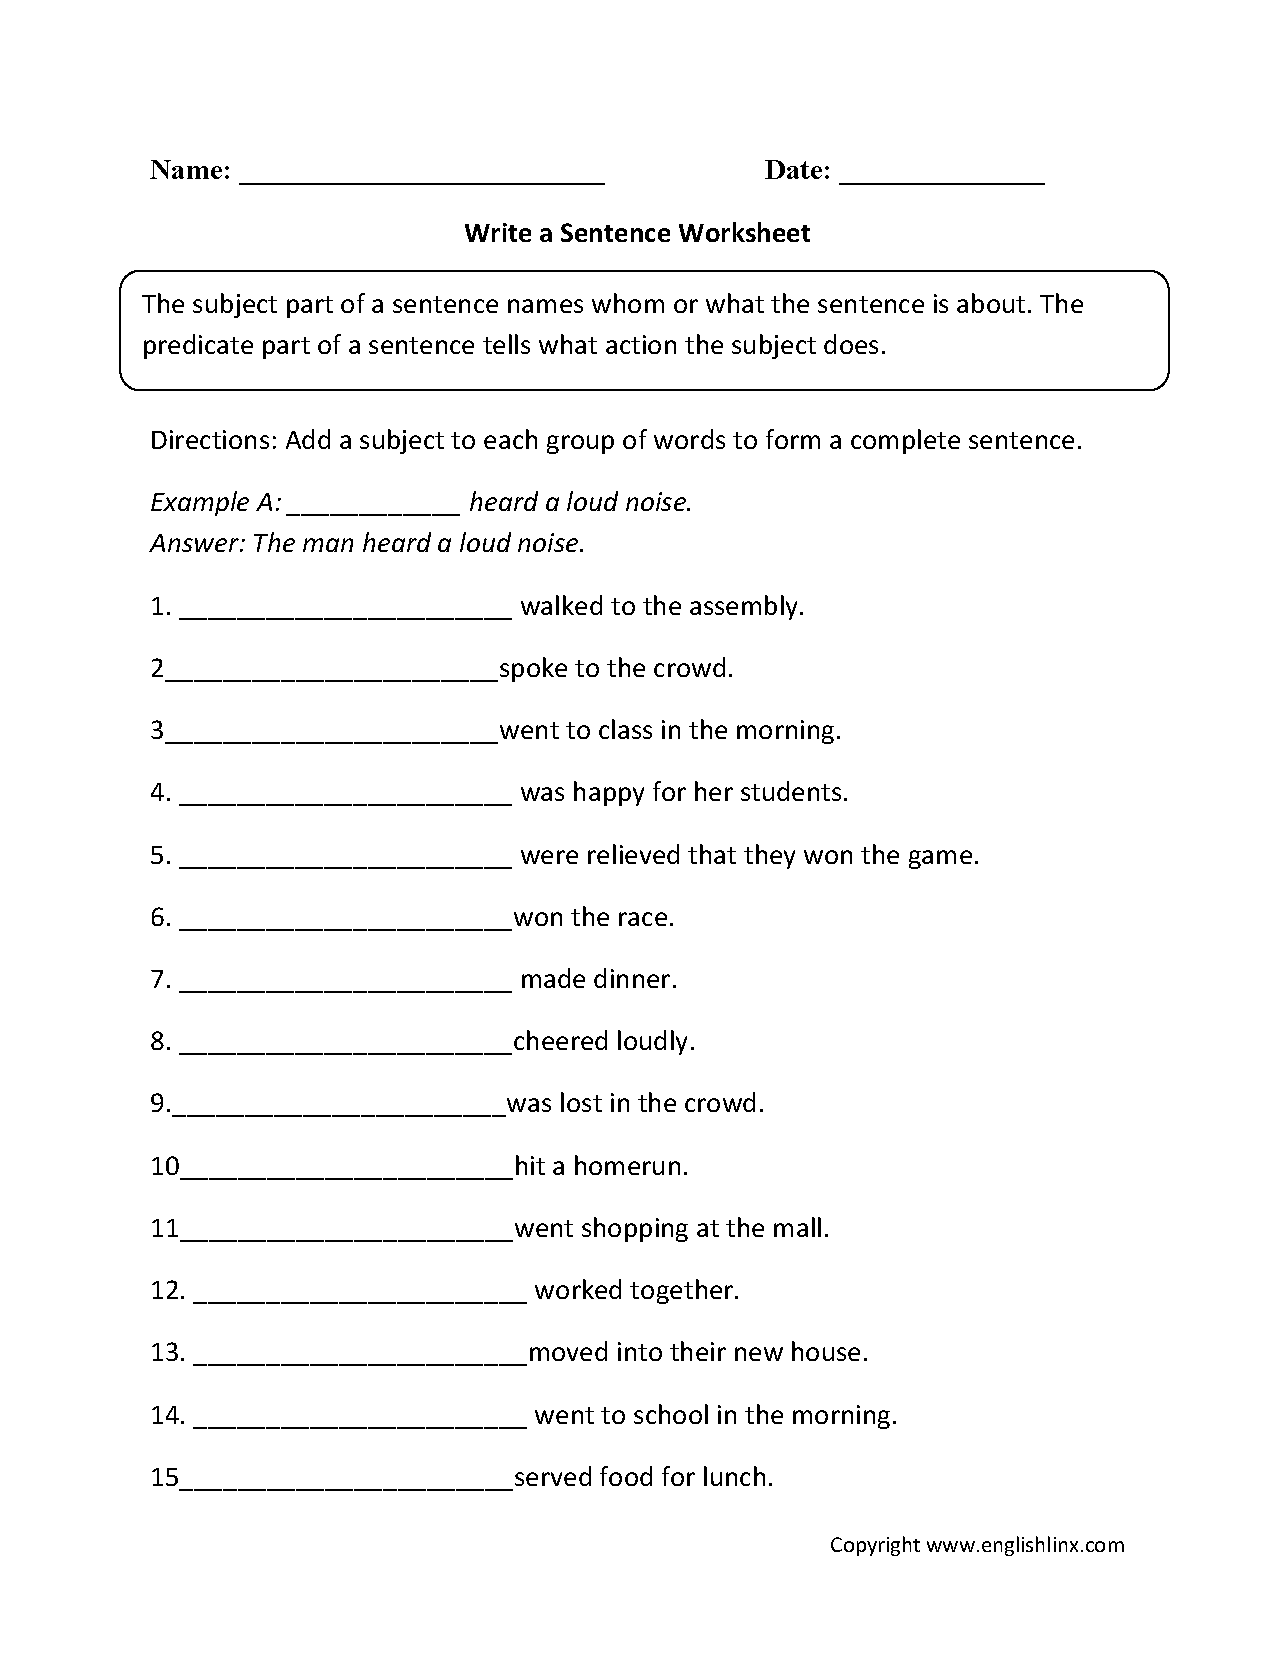 Worksheets English 9 Worksheets sentence structure worksheets building worksheets